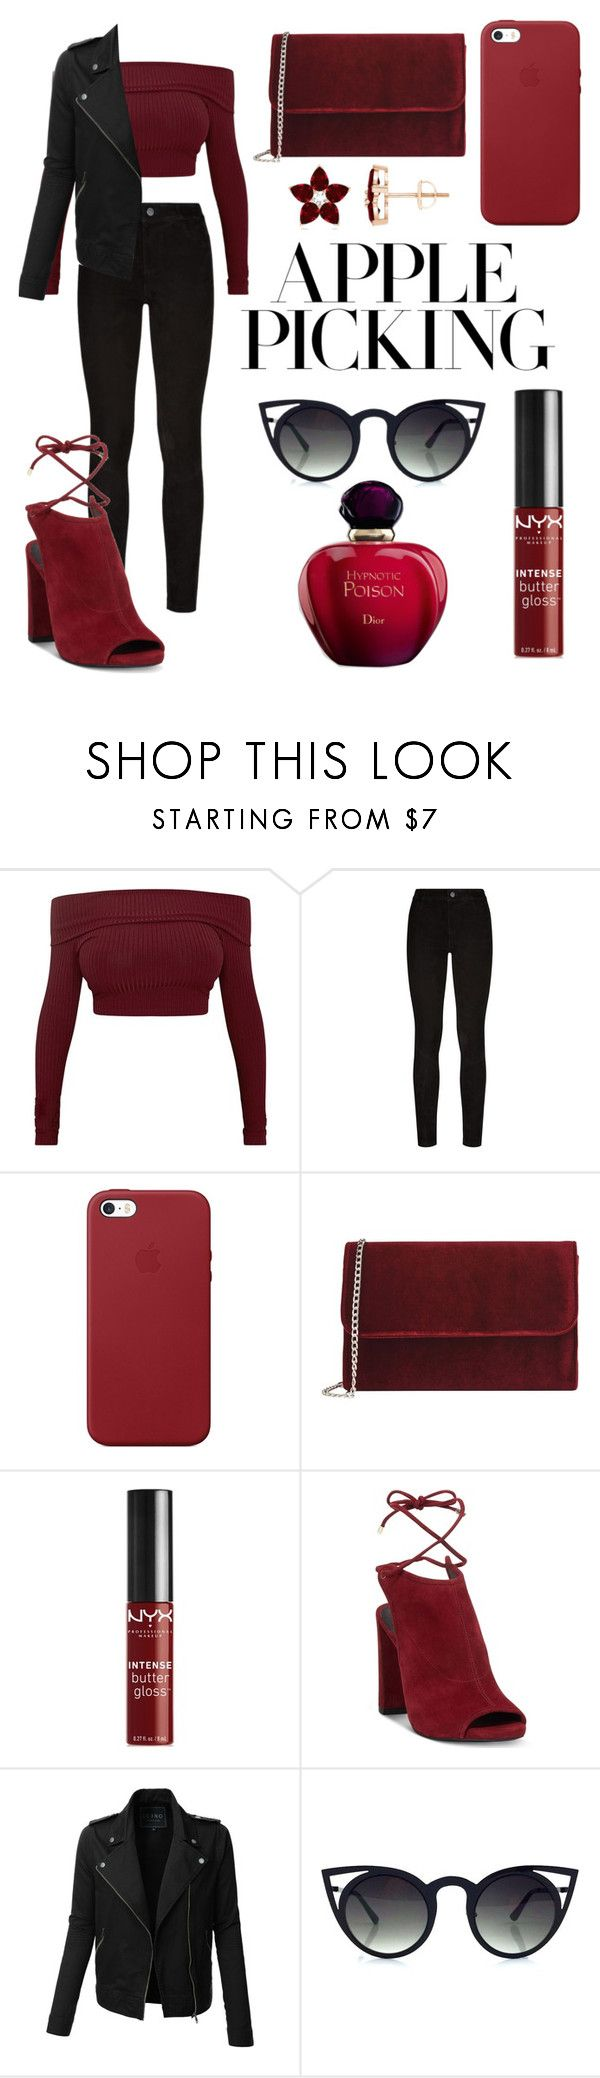 """""""pinneapple"""" by sm1leforme ❤ liked on Polyvore featuring Paige Denim, Apple, George J. Love, NYX, Kenneth Cole and LE3NO"""